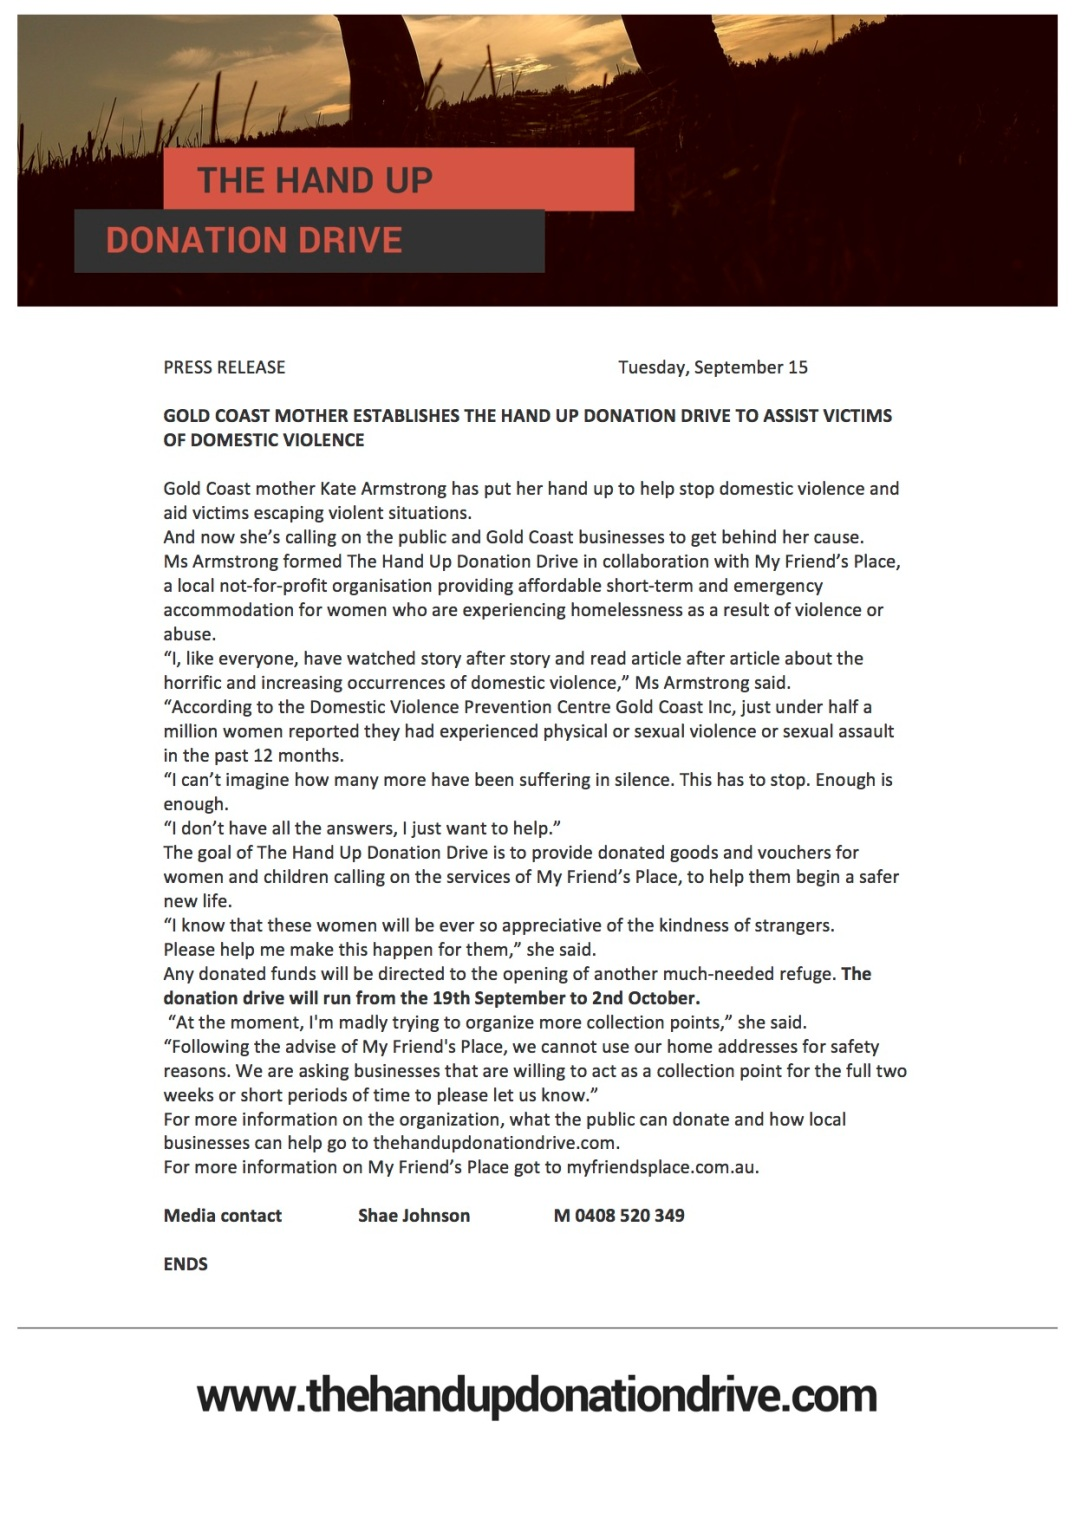 The Hand Up Donation Drive Press Release